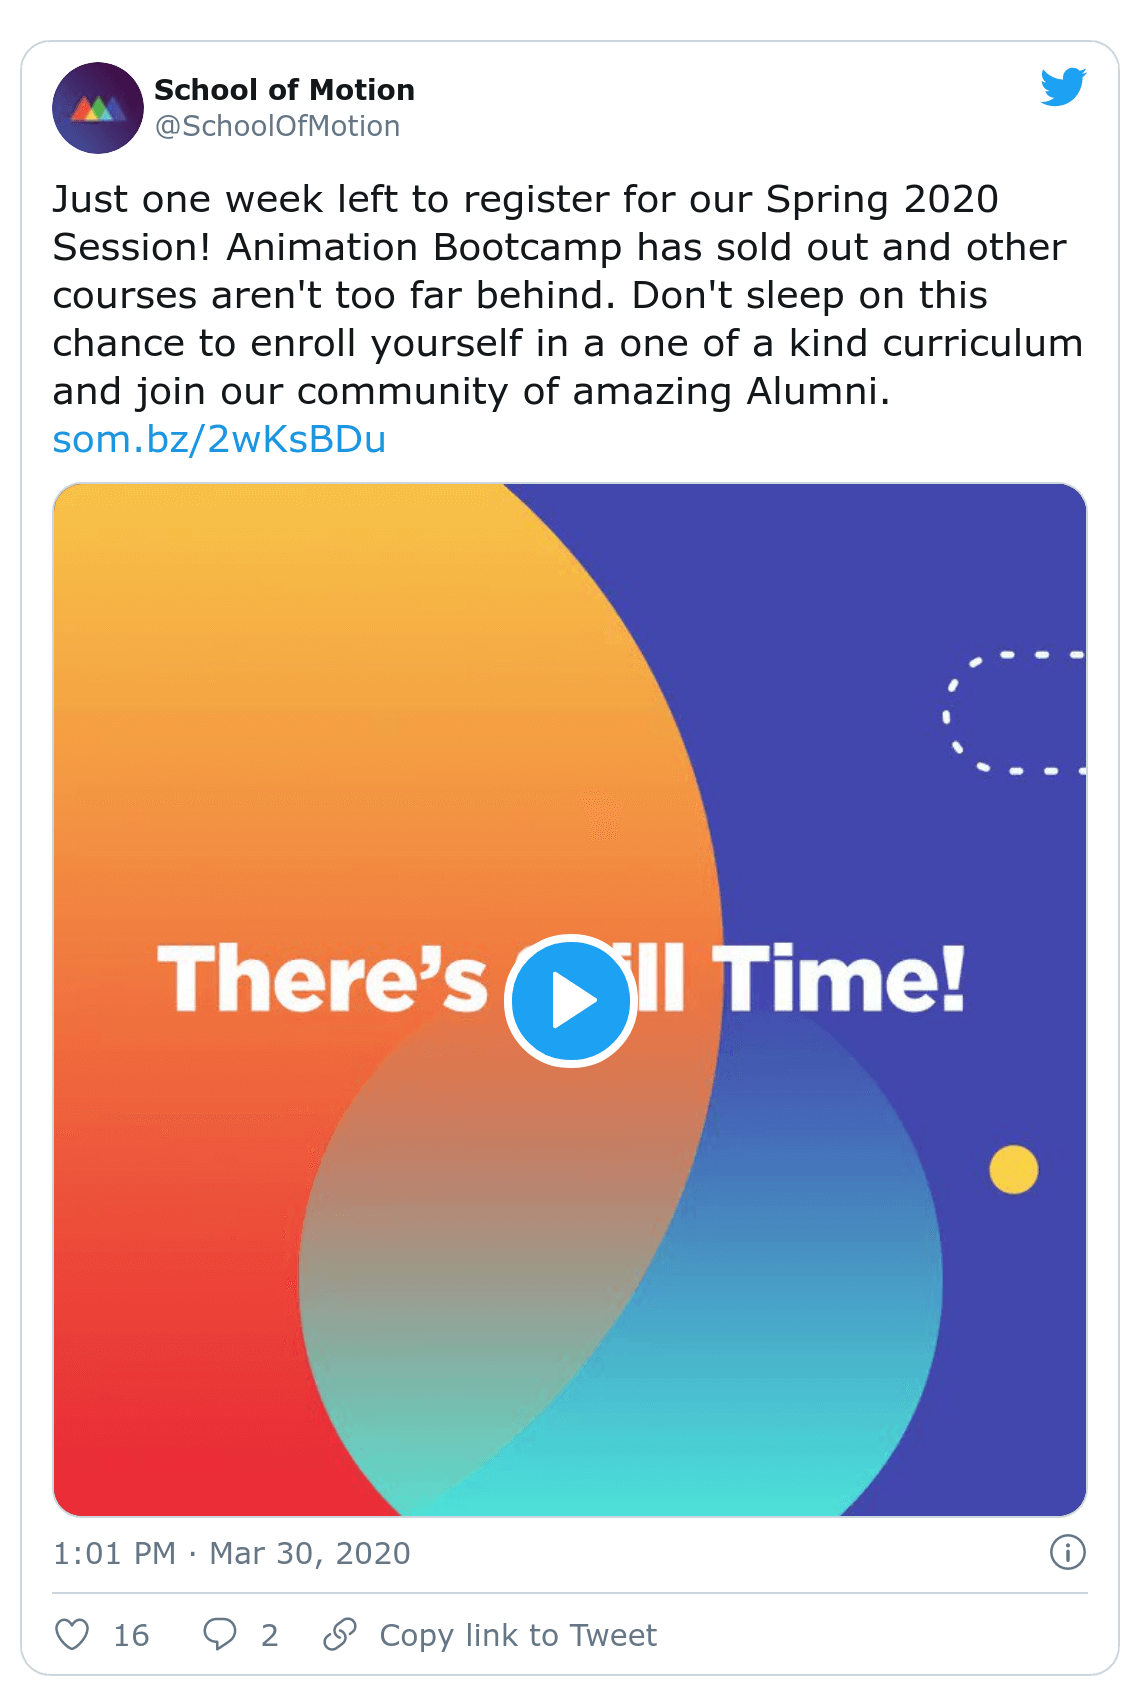 Screenshot of School of Motion tweet about their animation bootcamp